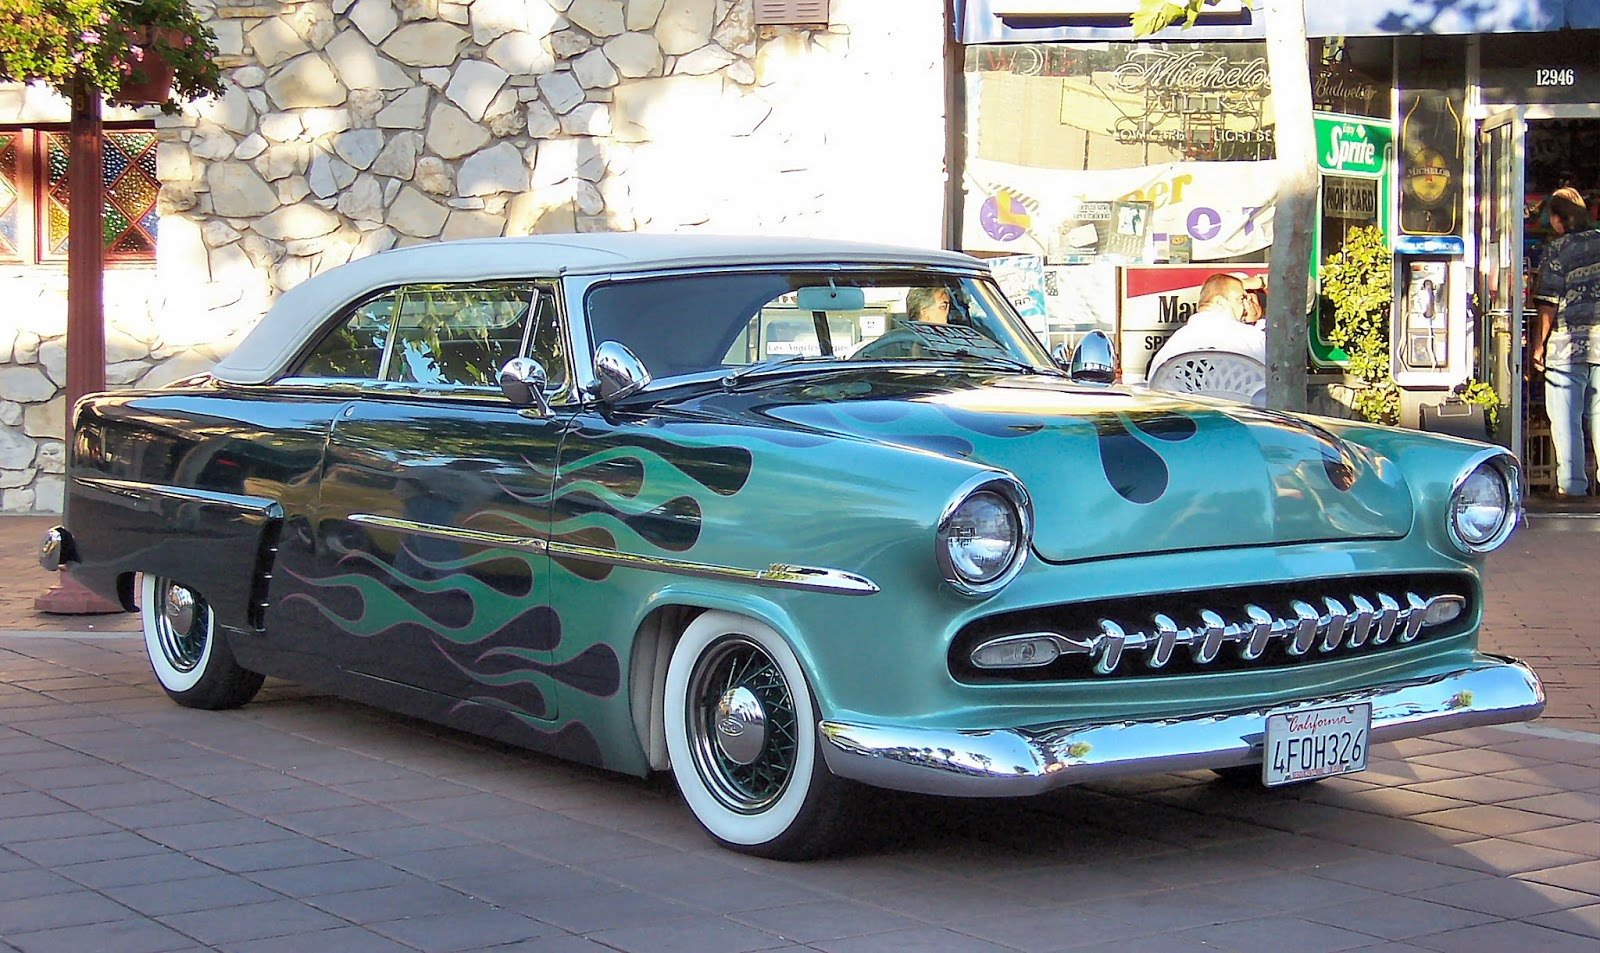 custom mercury 1950s cars chopped lead 1950 50s sleds automobile merc customized paint vehicles 1952 ford past brand